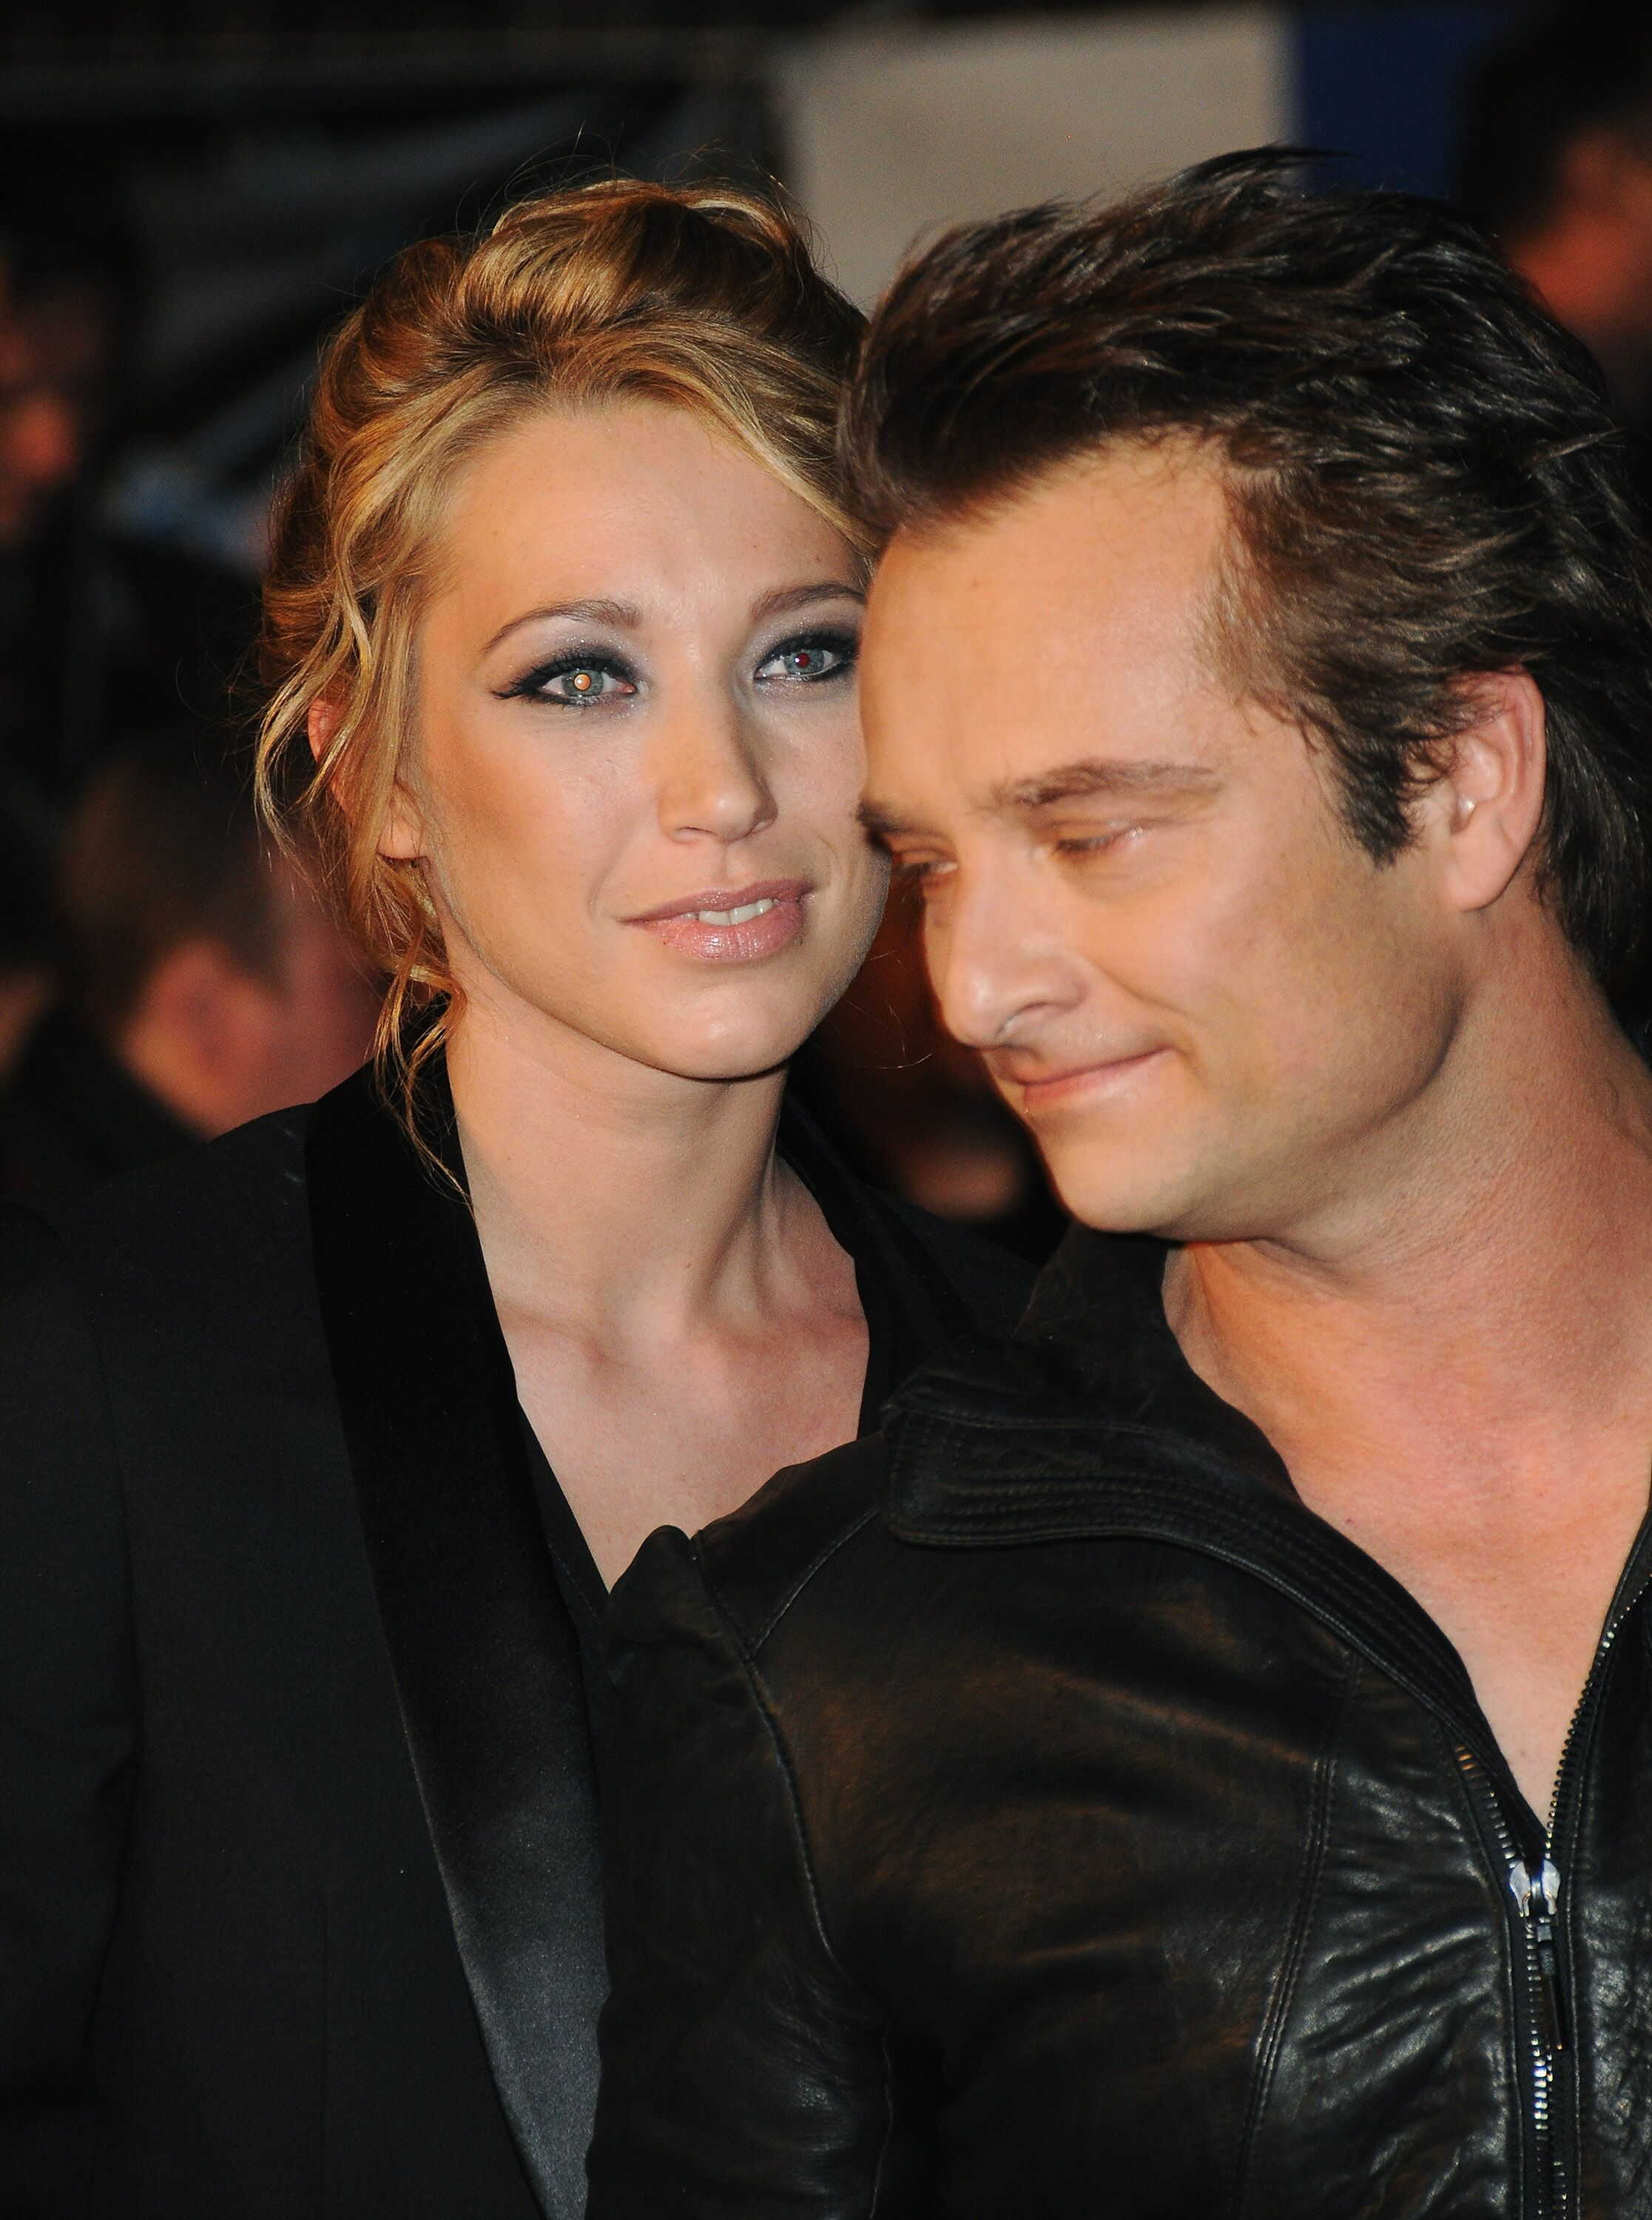 David Hallyday et Laura Smet participent aux NRJ Music Awards 2010 au Palais des Festivals  à Cannes. | Gatty Images